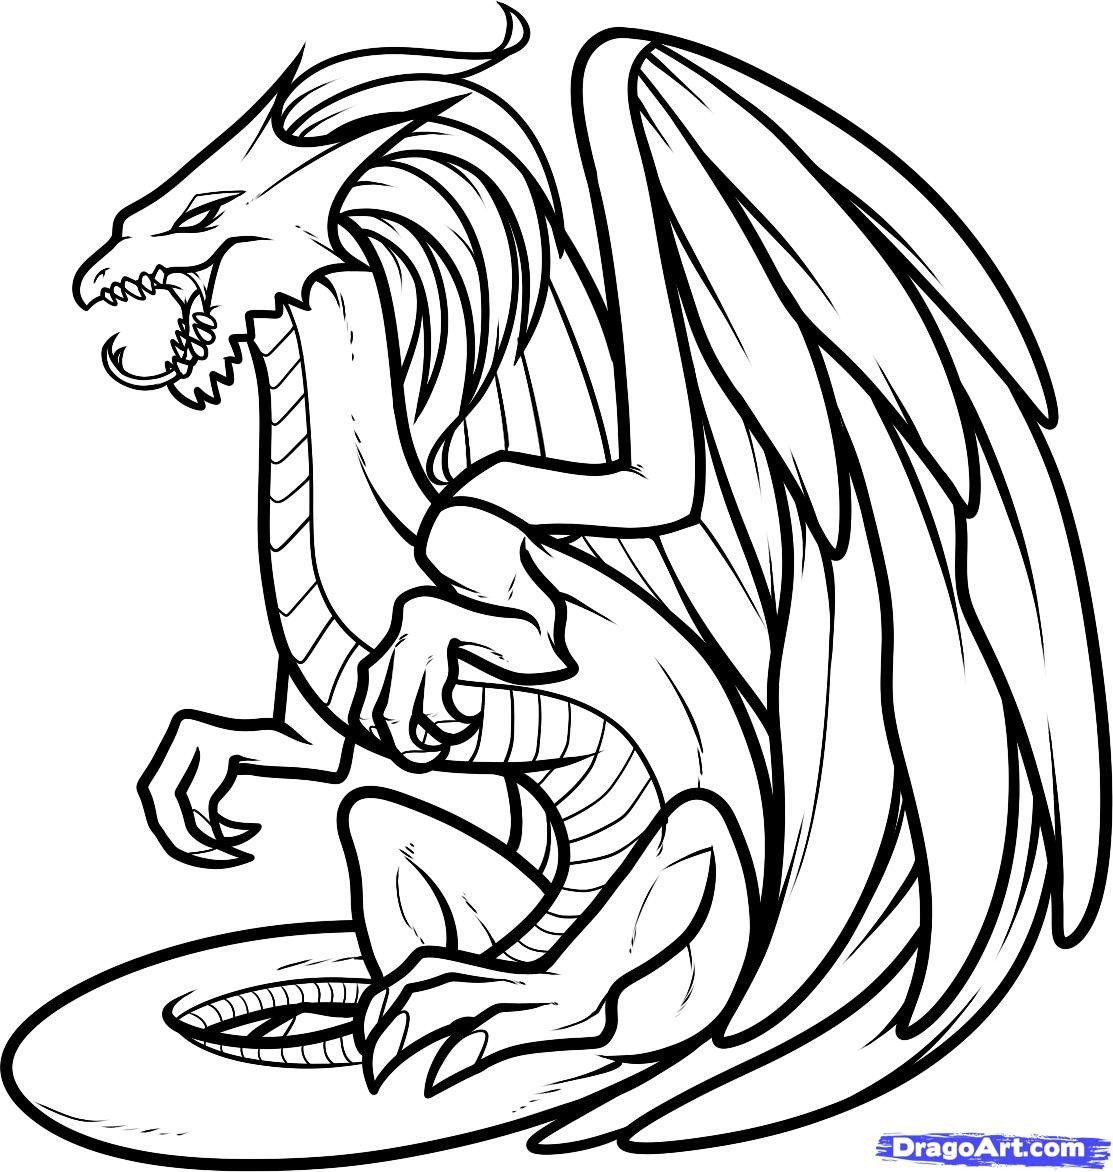 Baby Dragon Coloring Pages Beautiful Realistic Dragon Coloring Pages At Getdrawings Dragon Coloring Page Penguin Coloring Pages Realistic Dragon